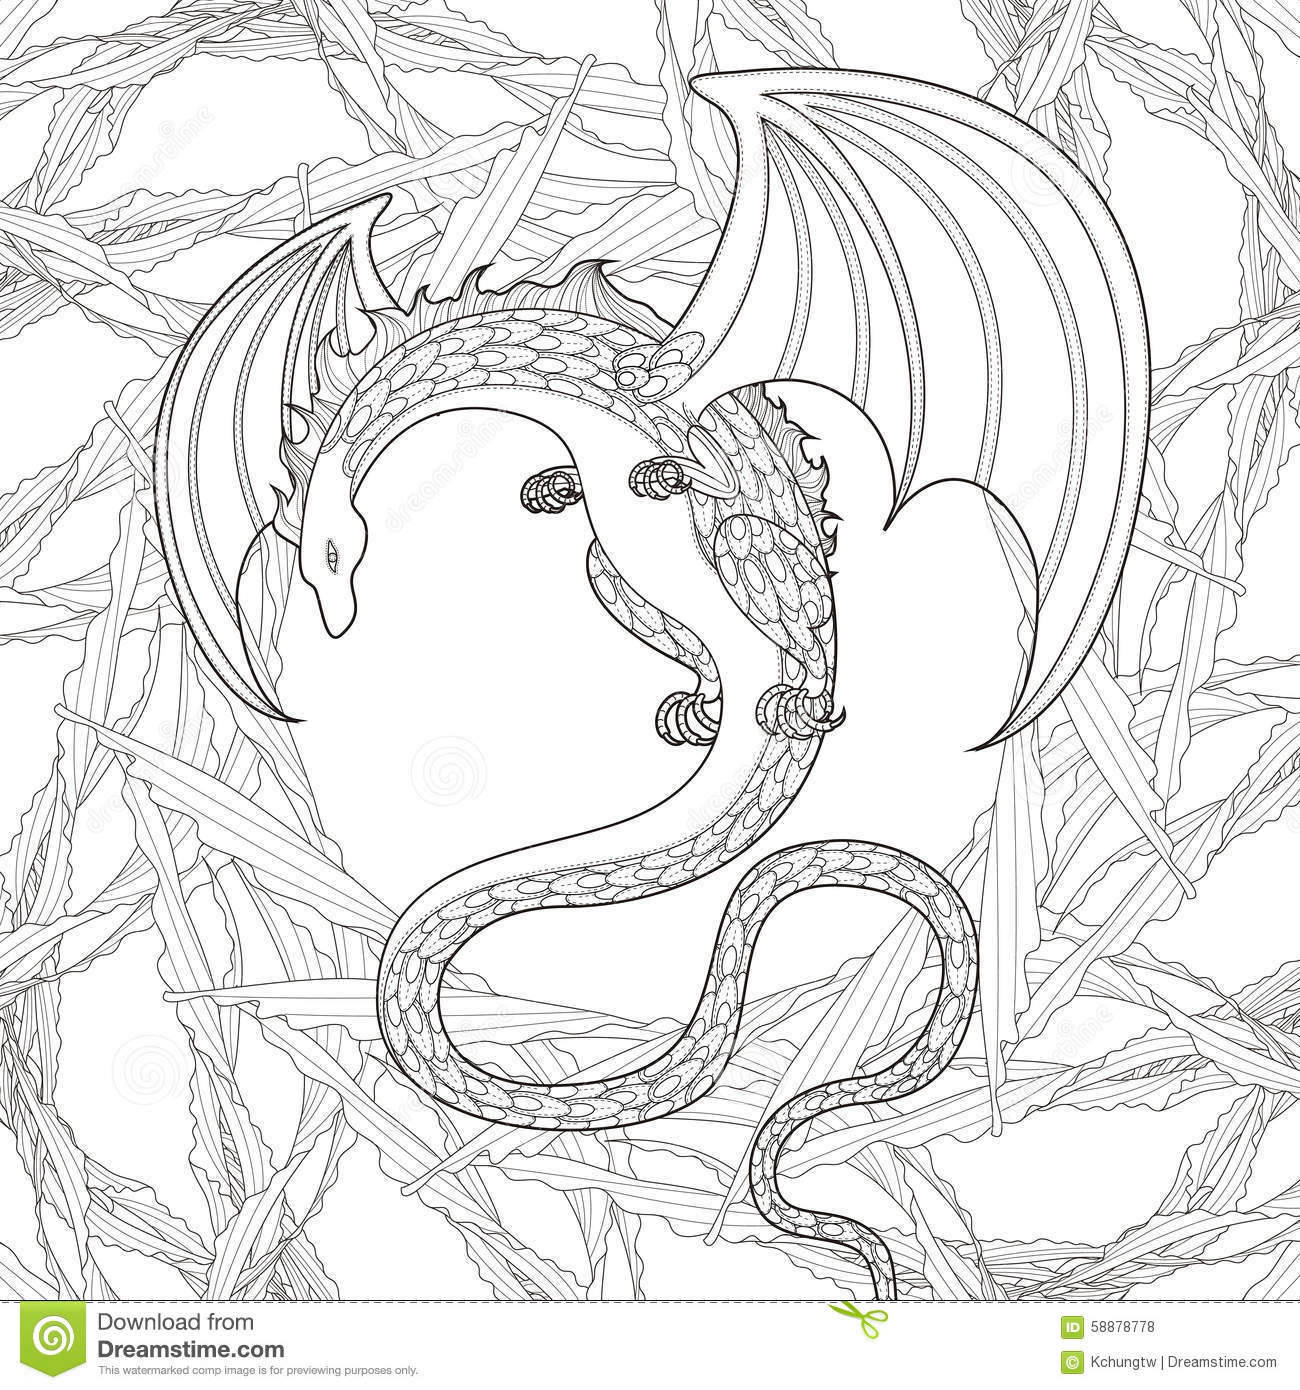 Mystery Dragon Coloring Page Stock Vector - Illustration of nature ...